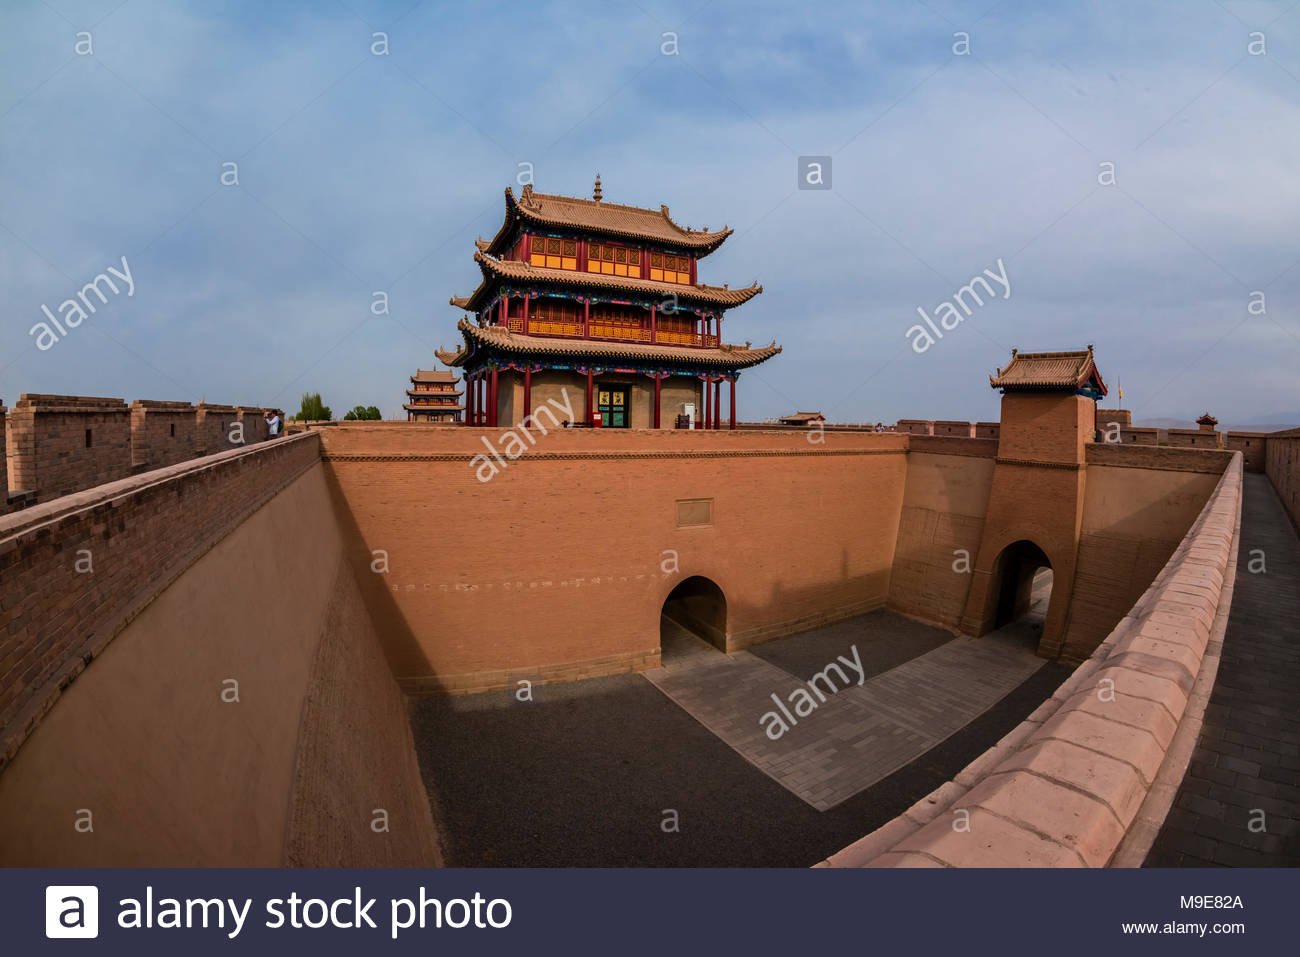 Rouyuan Tower (West Tower). Jiayuguan Fort is the western end of the Great Wall built in the Ming Dynasty (1368 – 1644). It was an important military - Stock Image